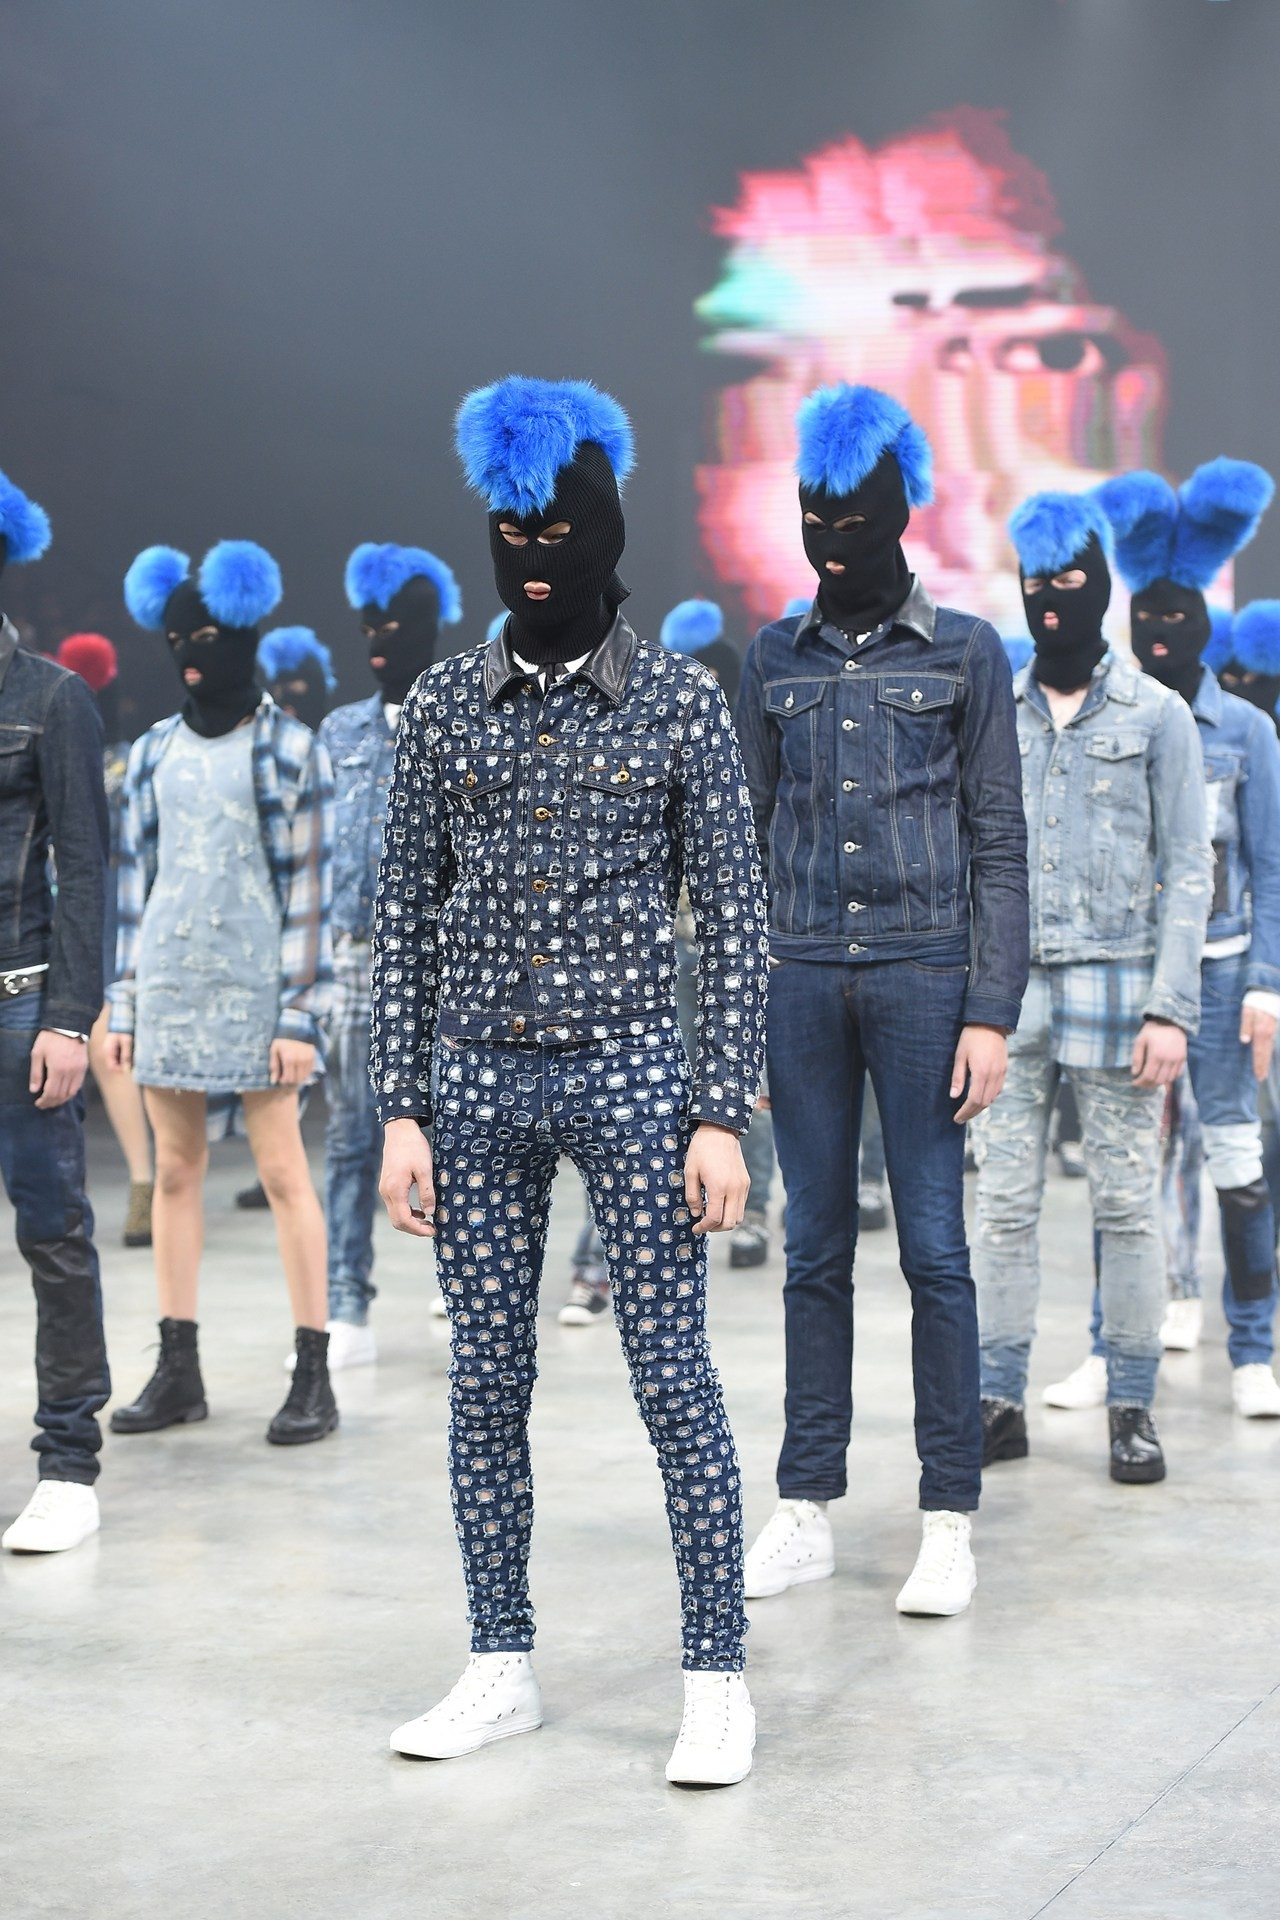 Nicola has taken a gender-neutral stand at Diesel (Foto: InDigital)